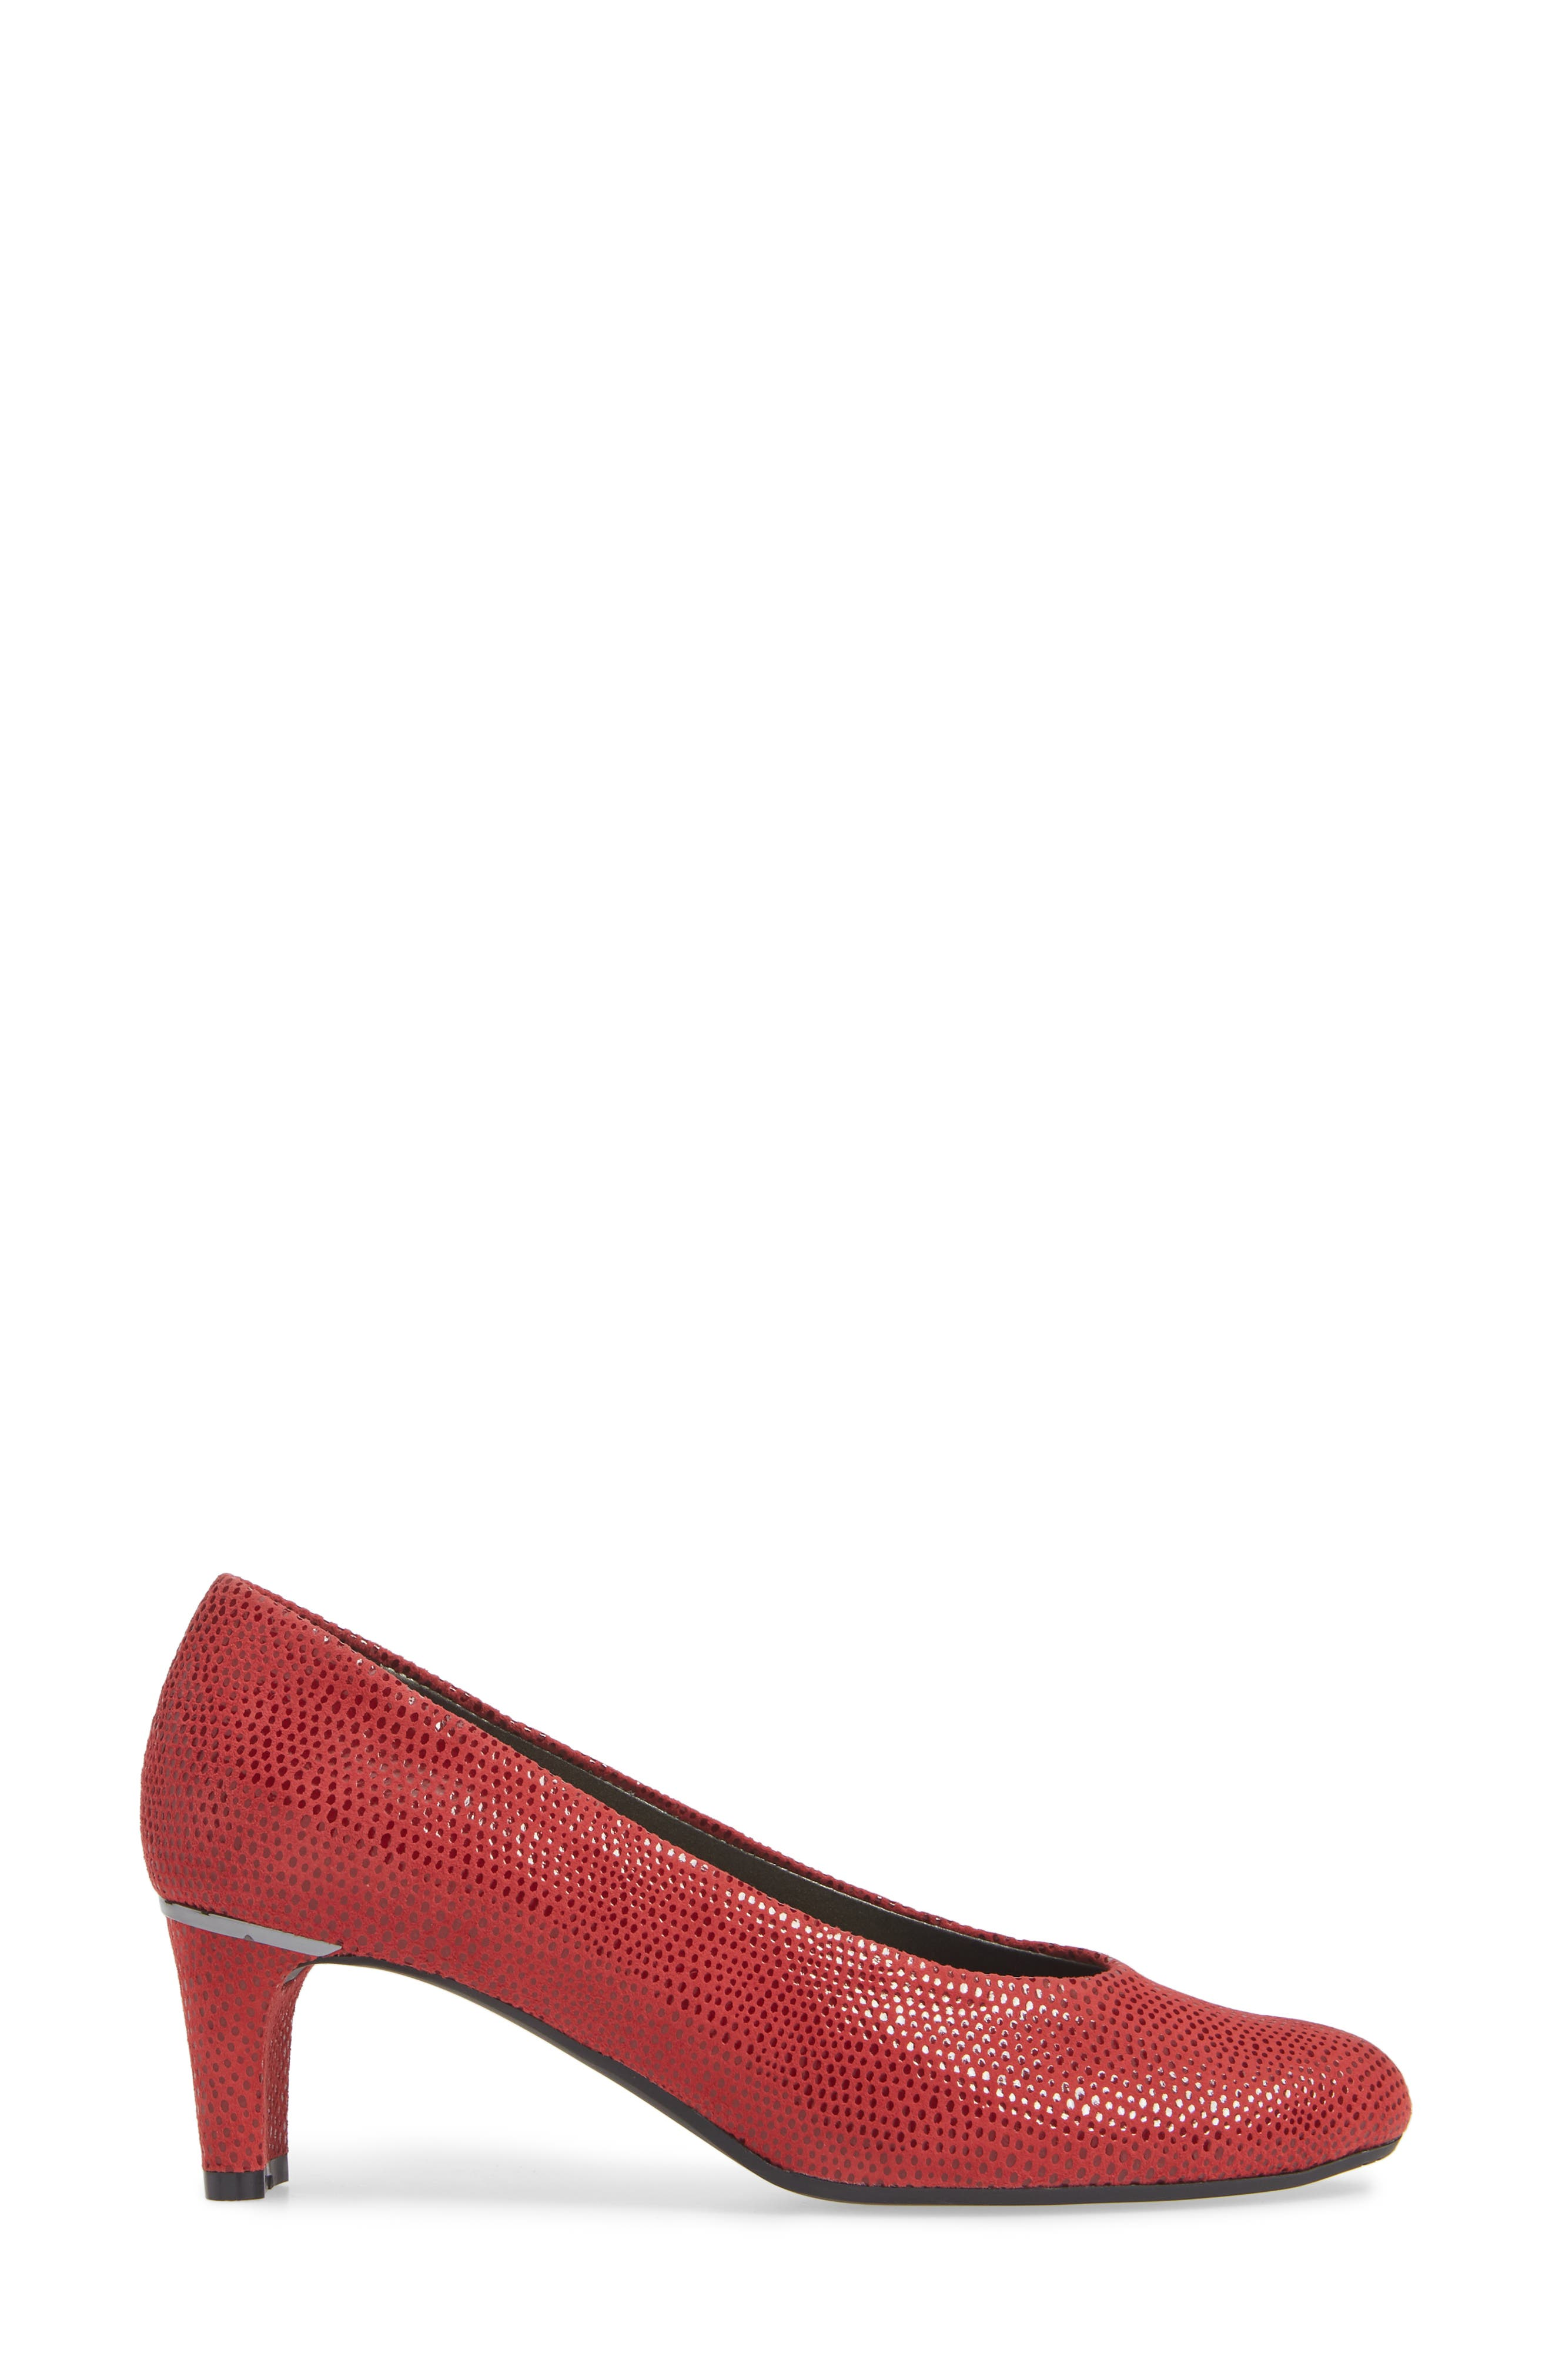 'Dayle' Pump,                             Alternate thumbnail 3, color,                             RED LEATHER